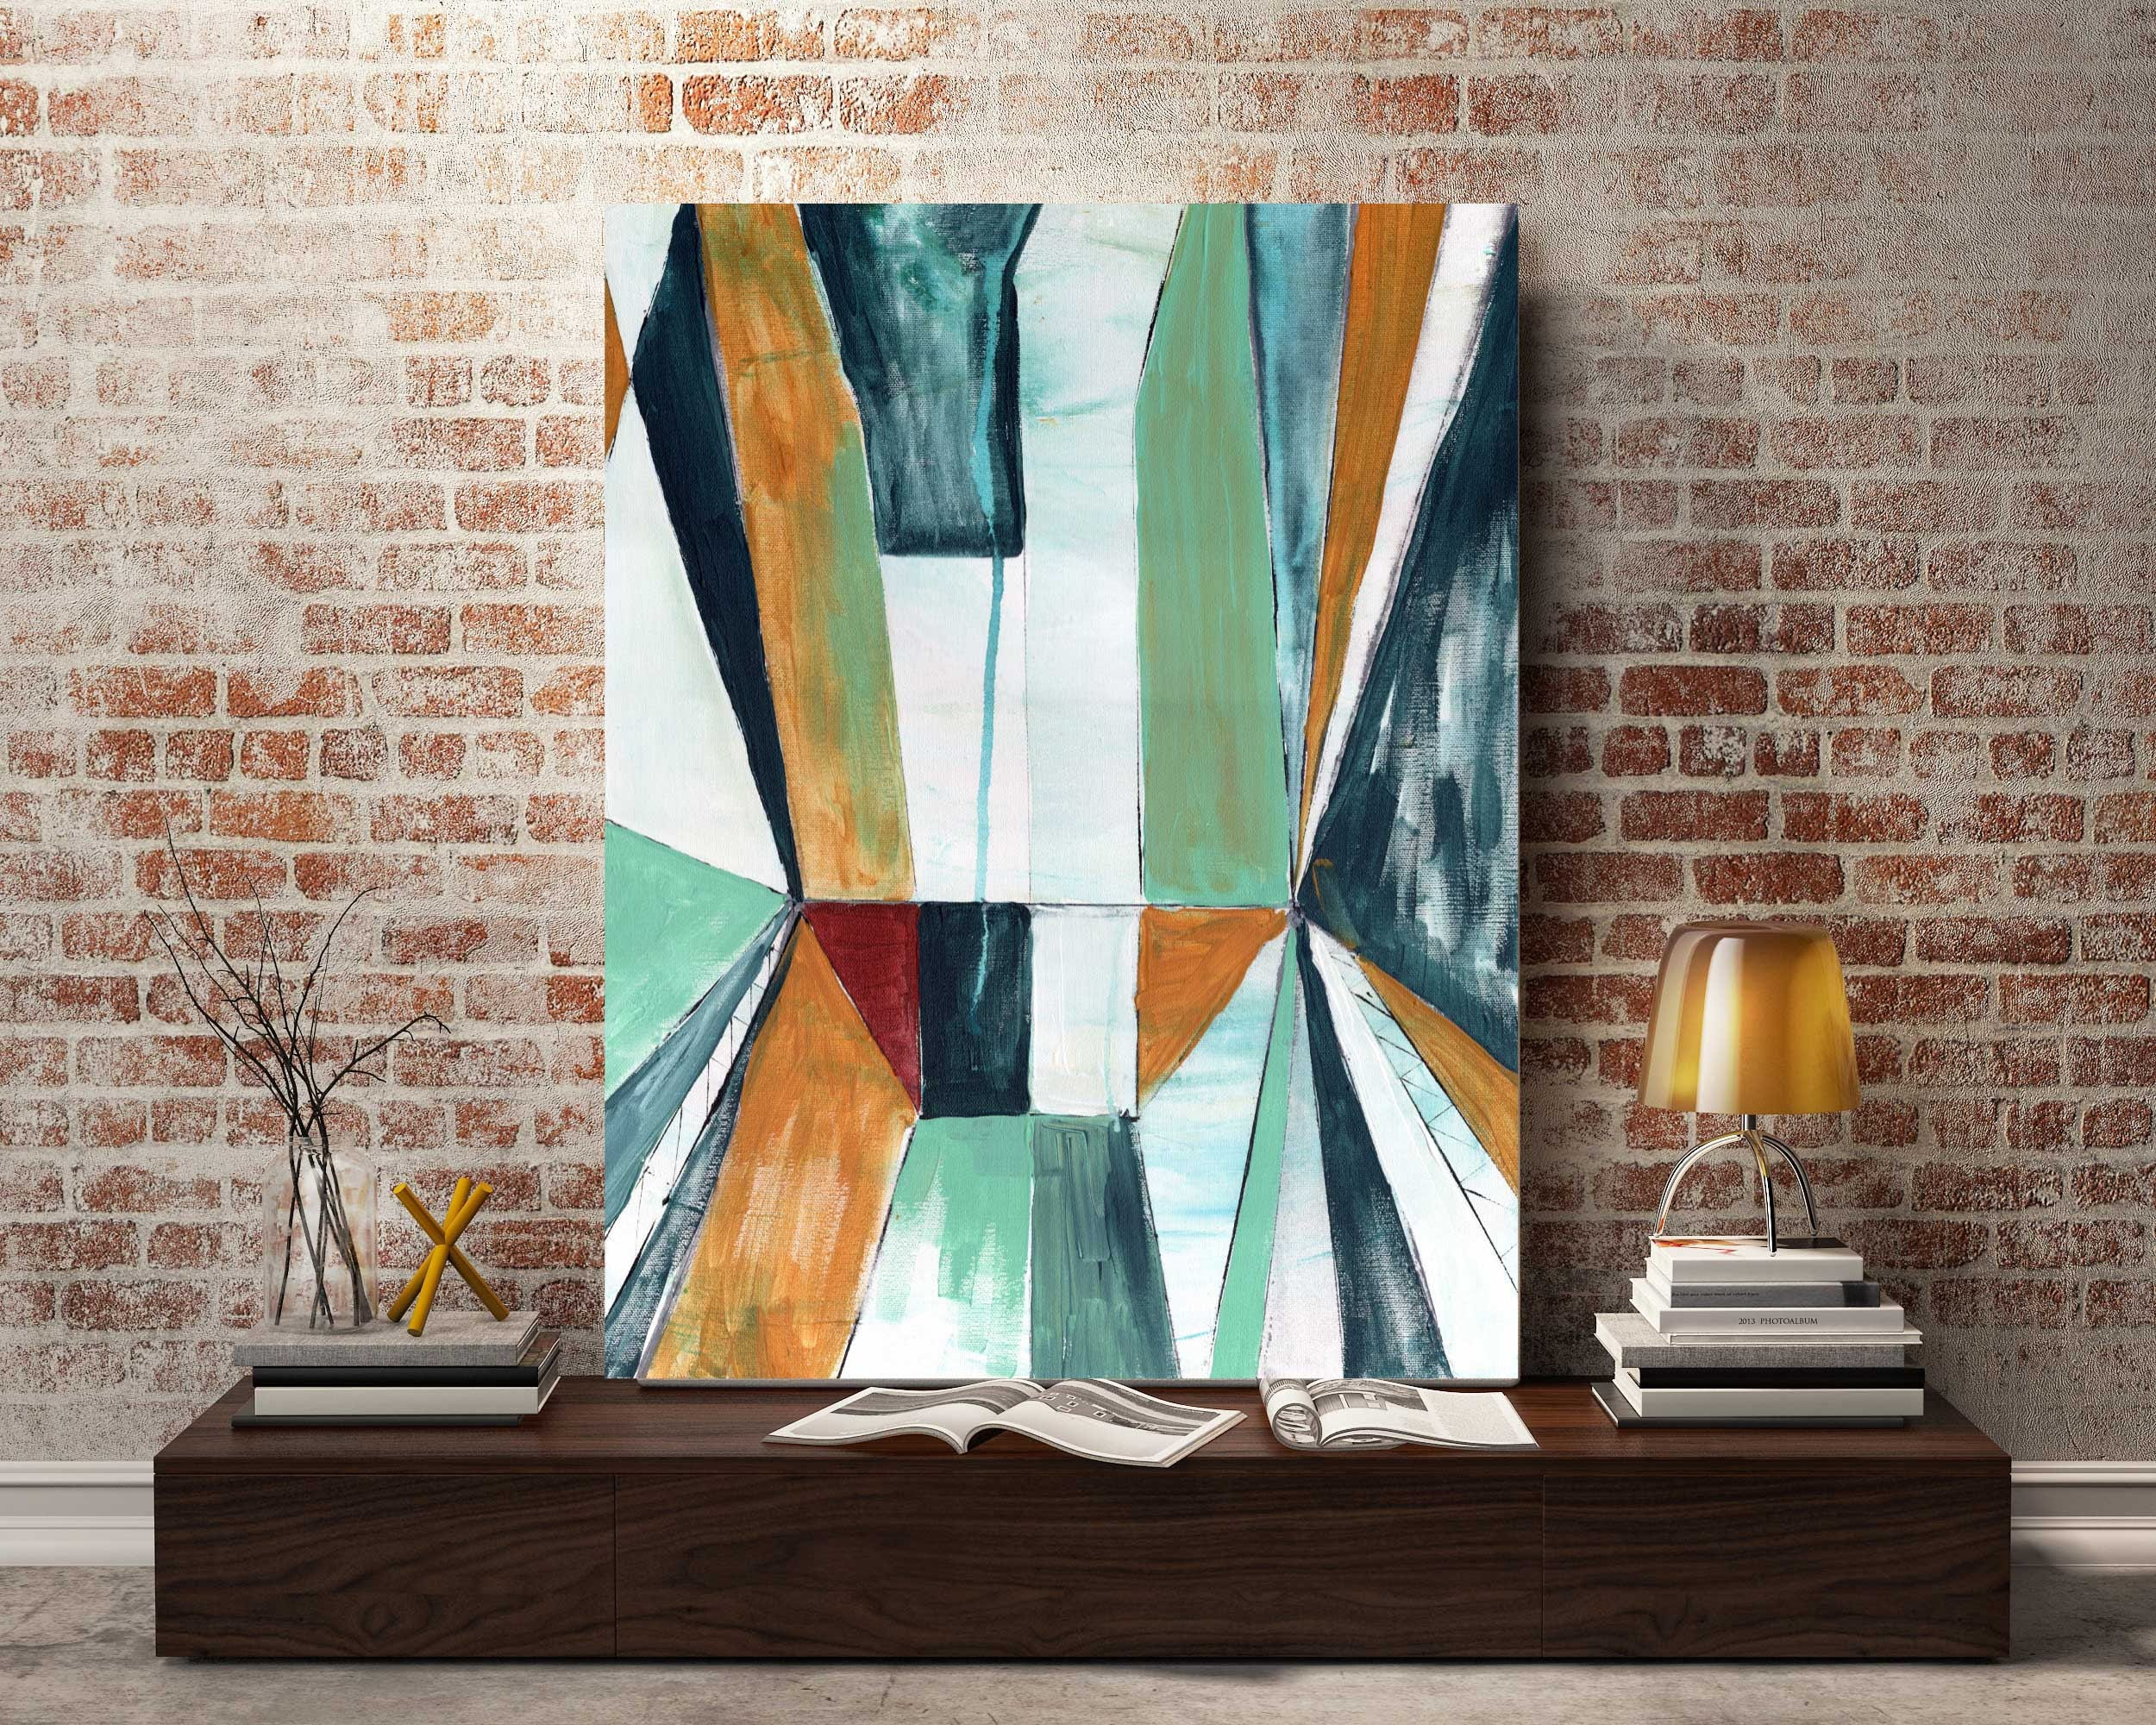 Super Original Abstract Painting Linear Block Abstract Art Download Free Architecture Designs Embacsunscenecom